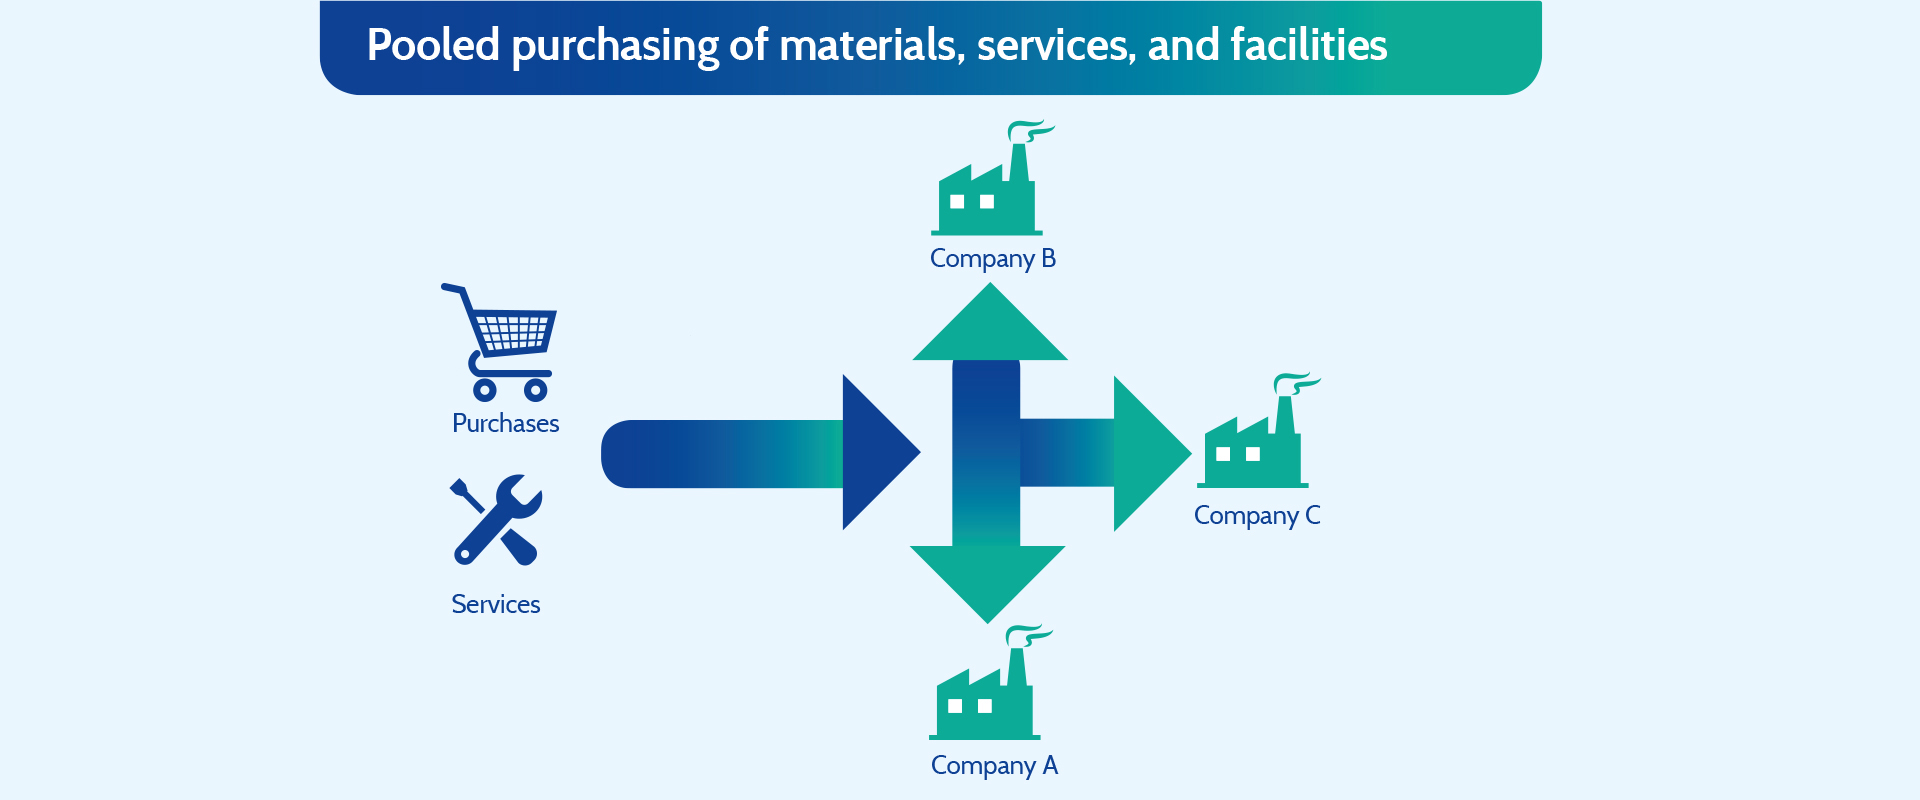 Pooled purchasing of materials, services, and facilities